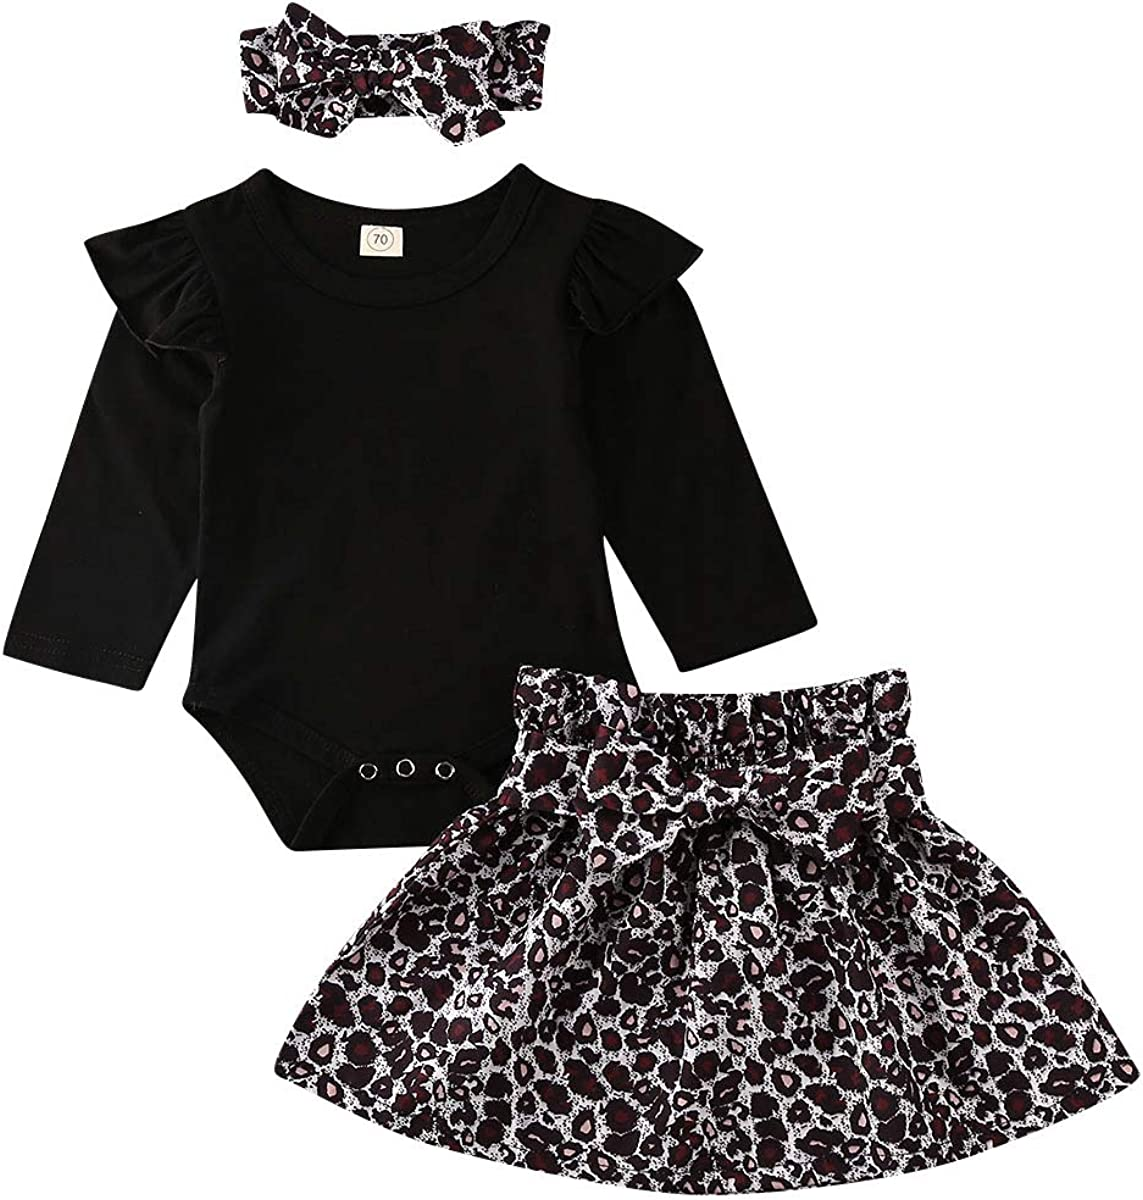 SUSSURRO Newborn Baby Girl Outfit Romper Headband Leopard Skirt Set Clothes